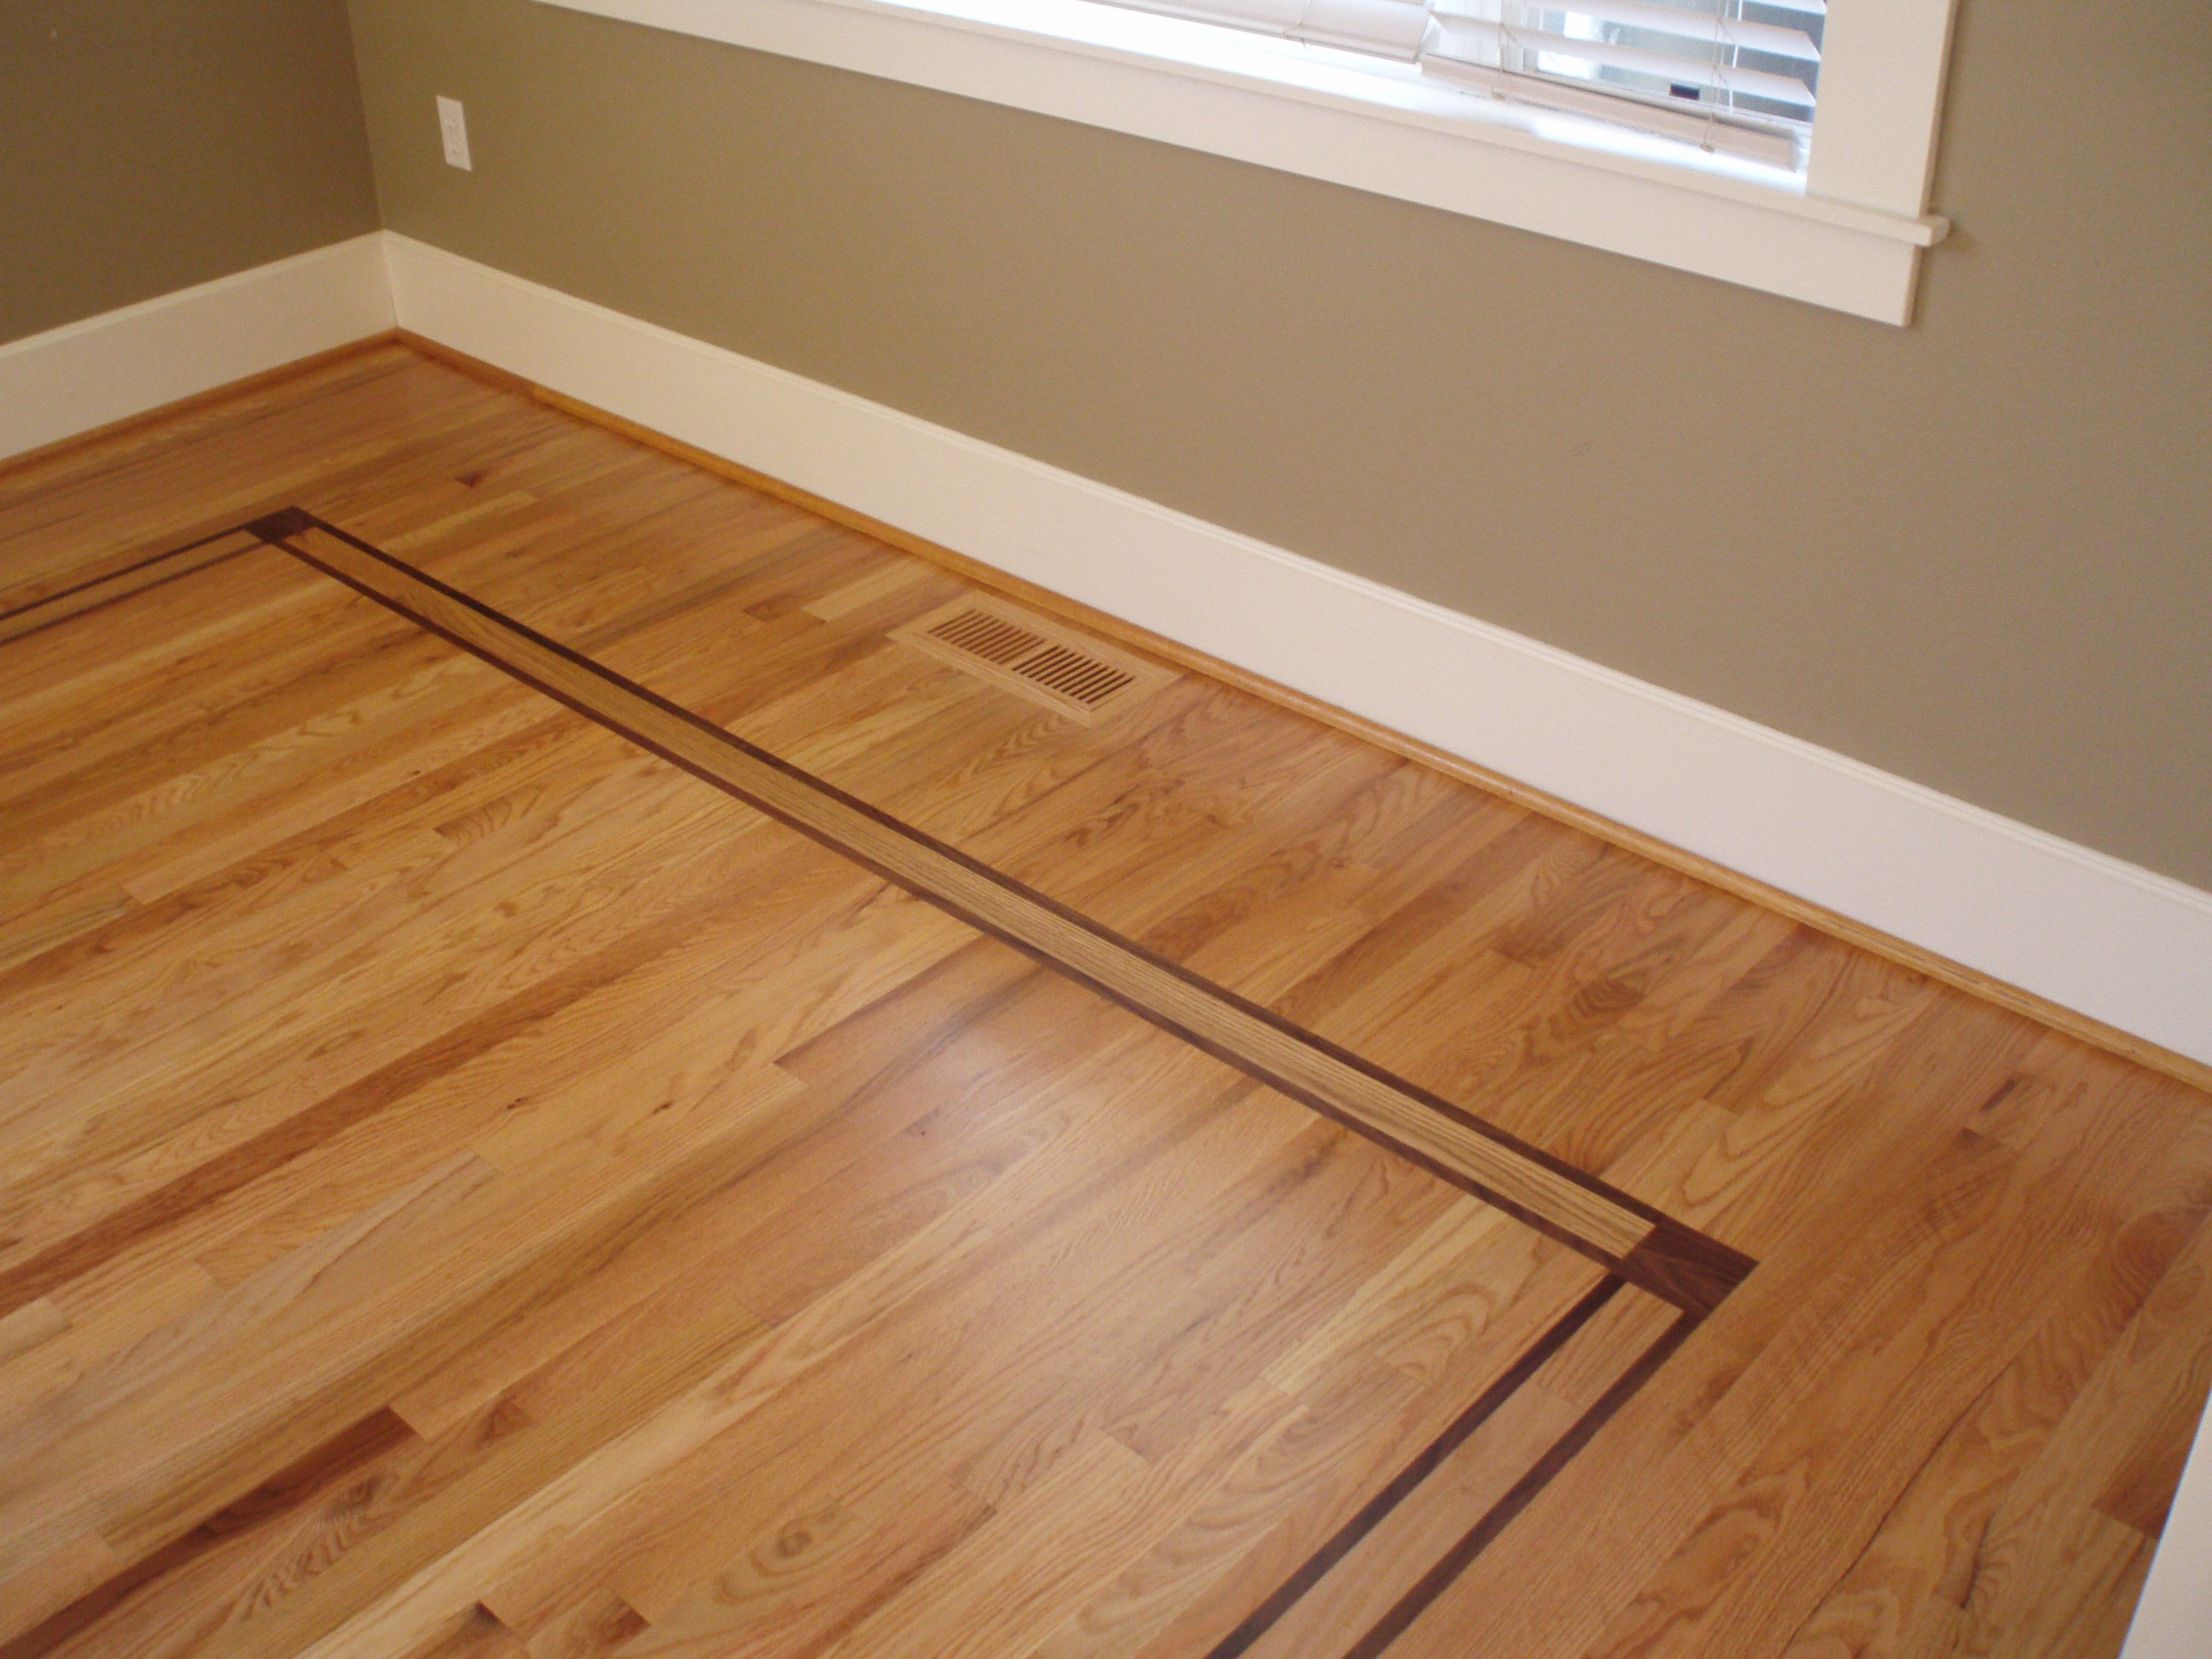 underlayment for solid hardwood floors of inlay of walnut with red oak flooring www dominohardwoodfloors com intended for inlay of walnut with red oak flooring www dominohardwoodfloors com portland or domino hardwood floors inc